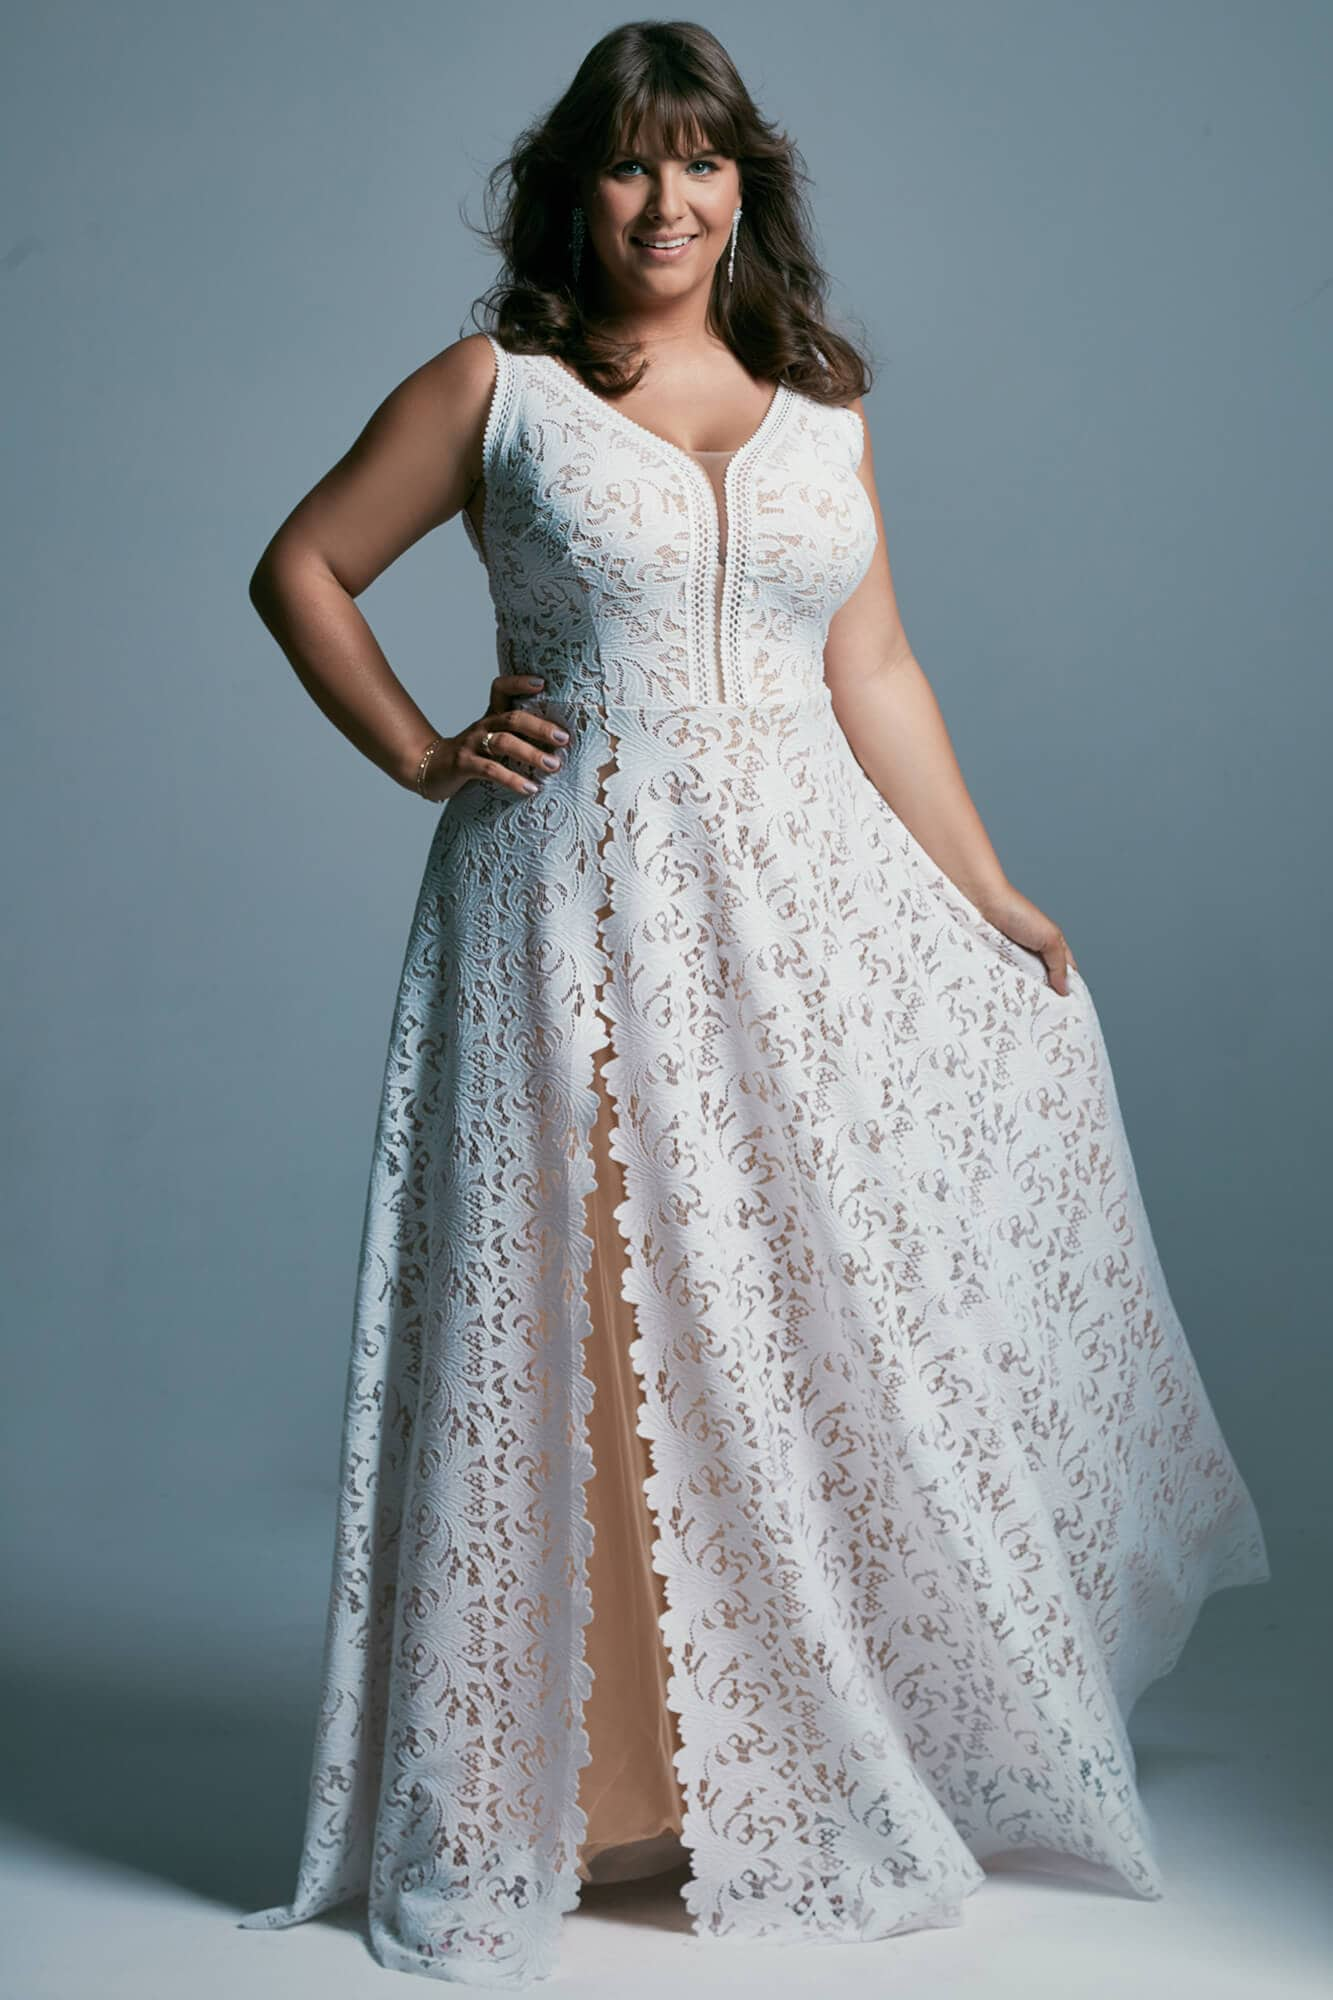 Feminine plus size wedding dress in warm white color Santorini 1 plus size